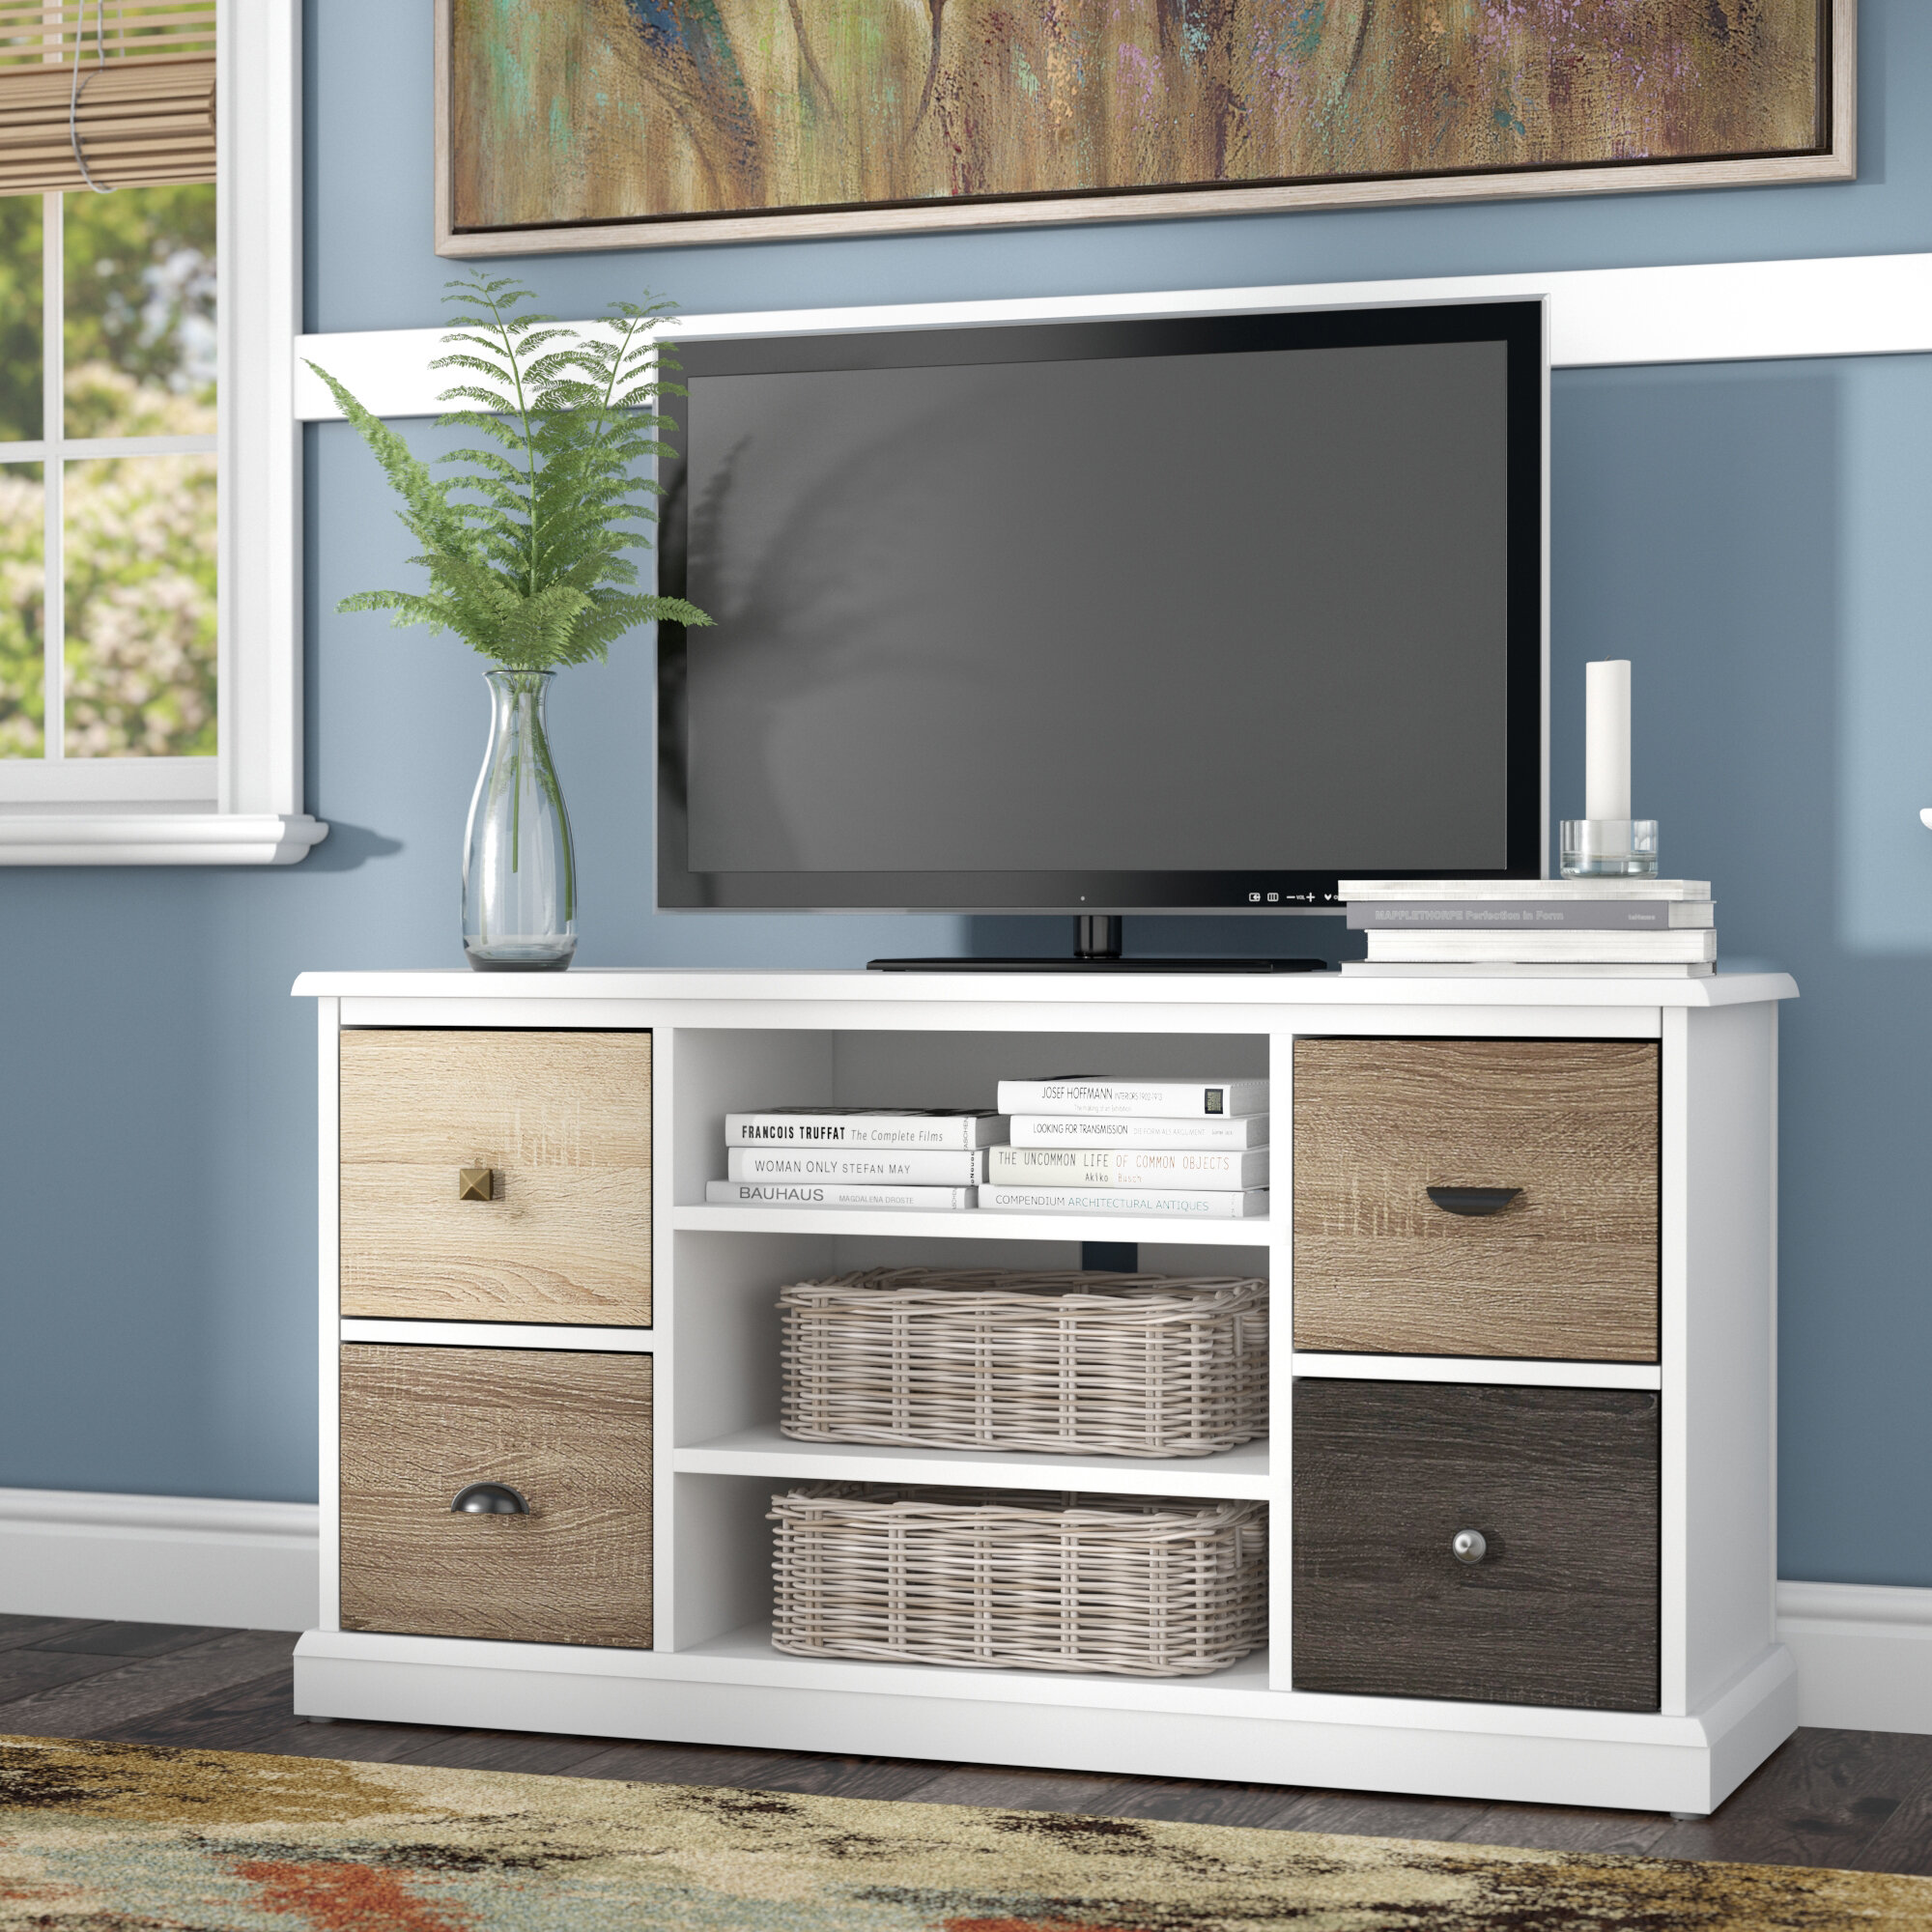 Red Barrel Studio Snowy Mountain Tv Stand For Tvs Up To 48 Reviews Wayfair Co Uk